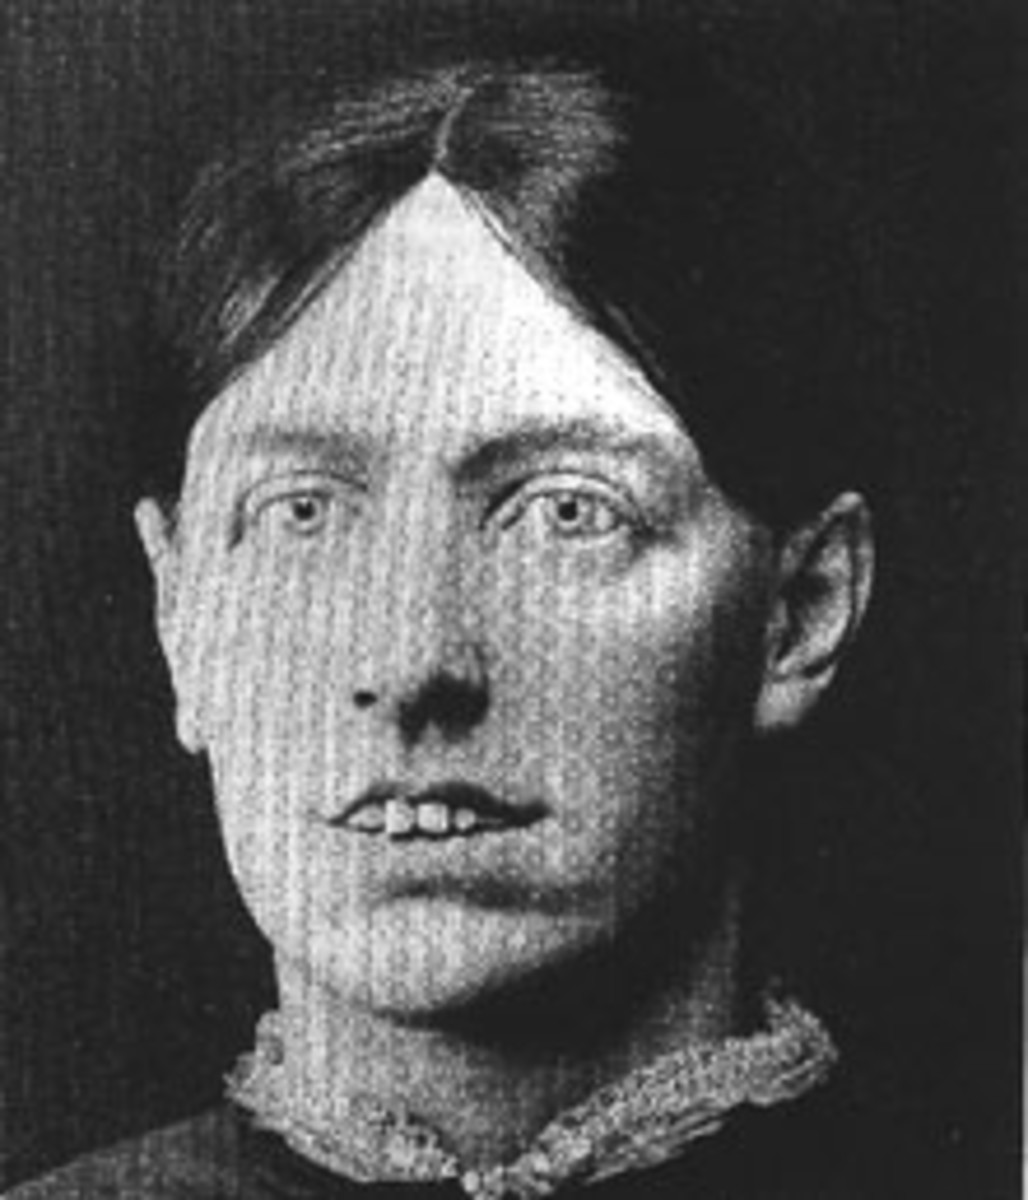 Mary Pearcey was hung for two murders she was convicted of. But was she really Jill The Ripper.